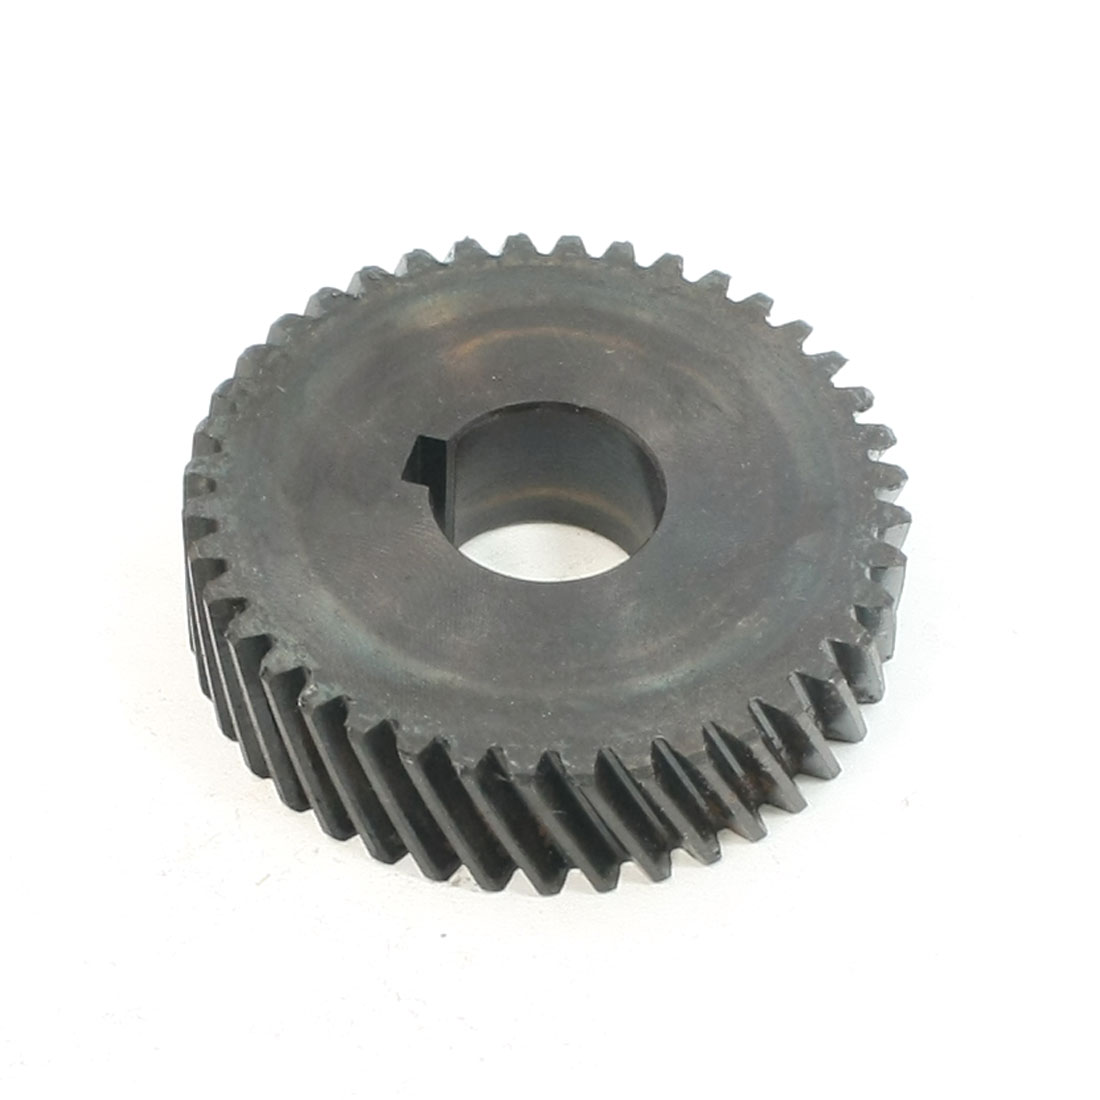 Replacement Part Helical Gear Wheel 40 Teeth for LG 355 Cut-off Machine